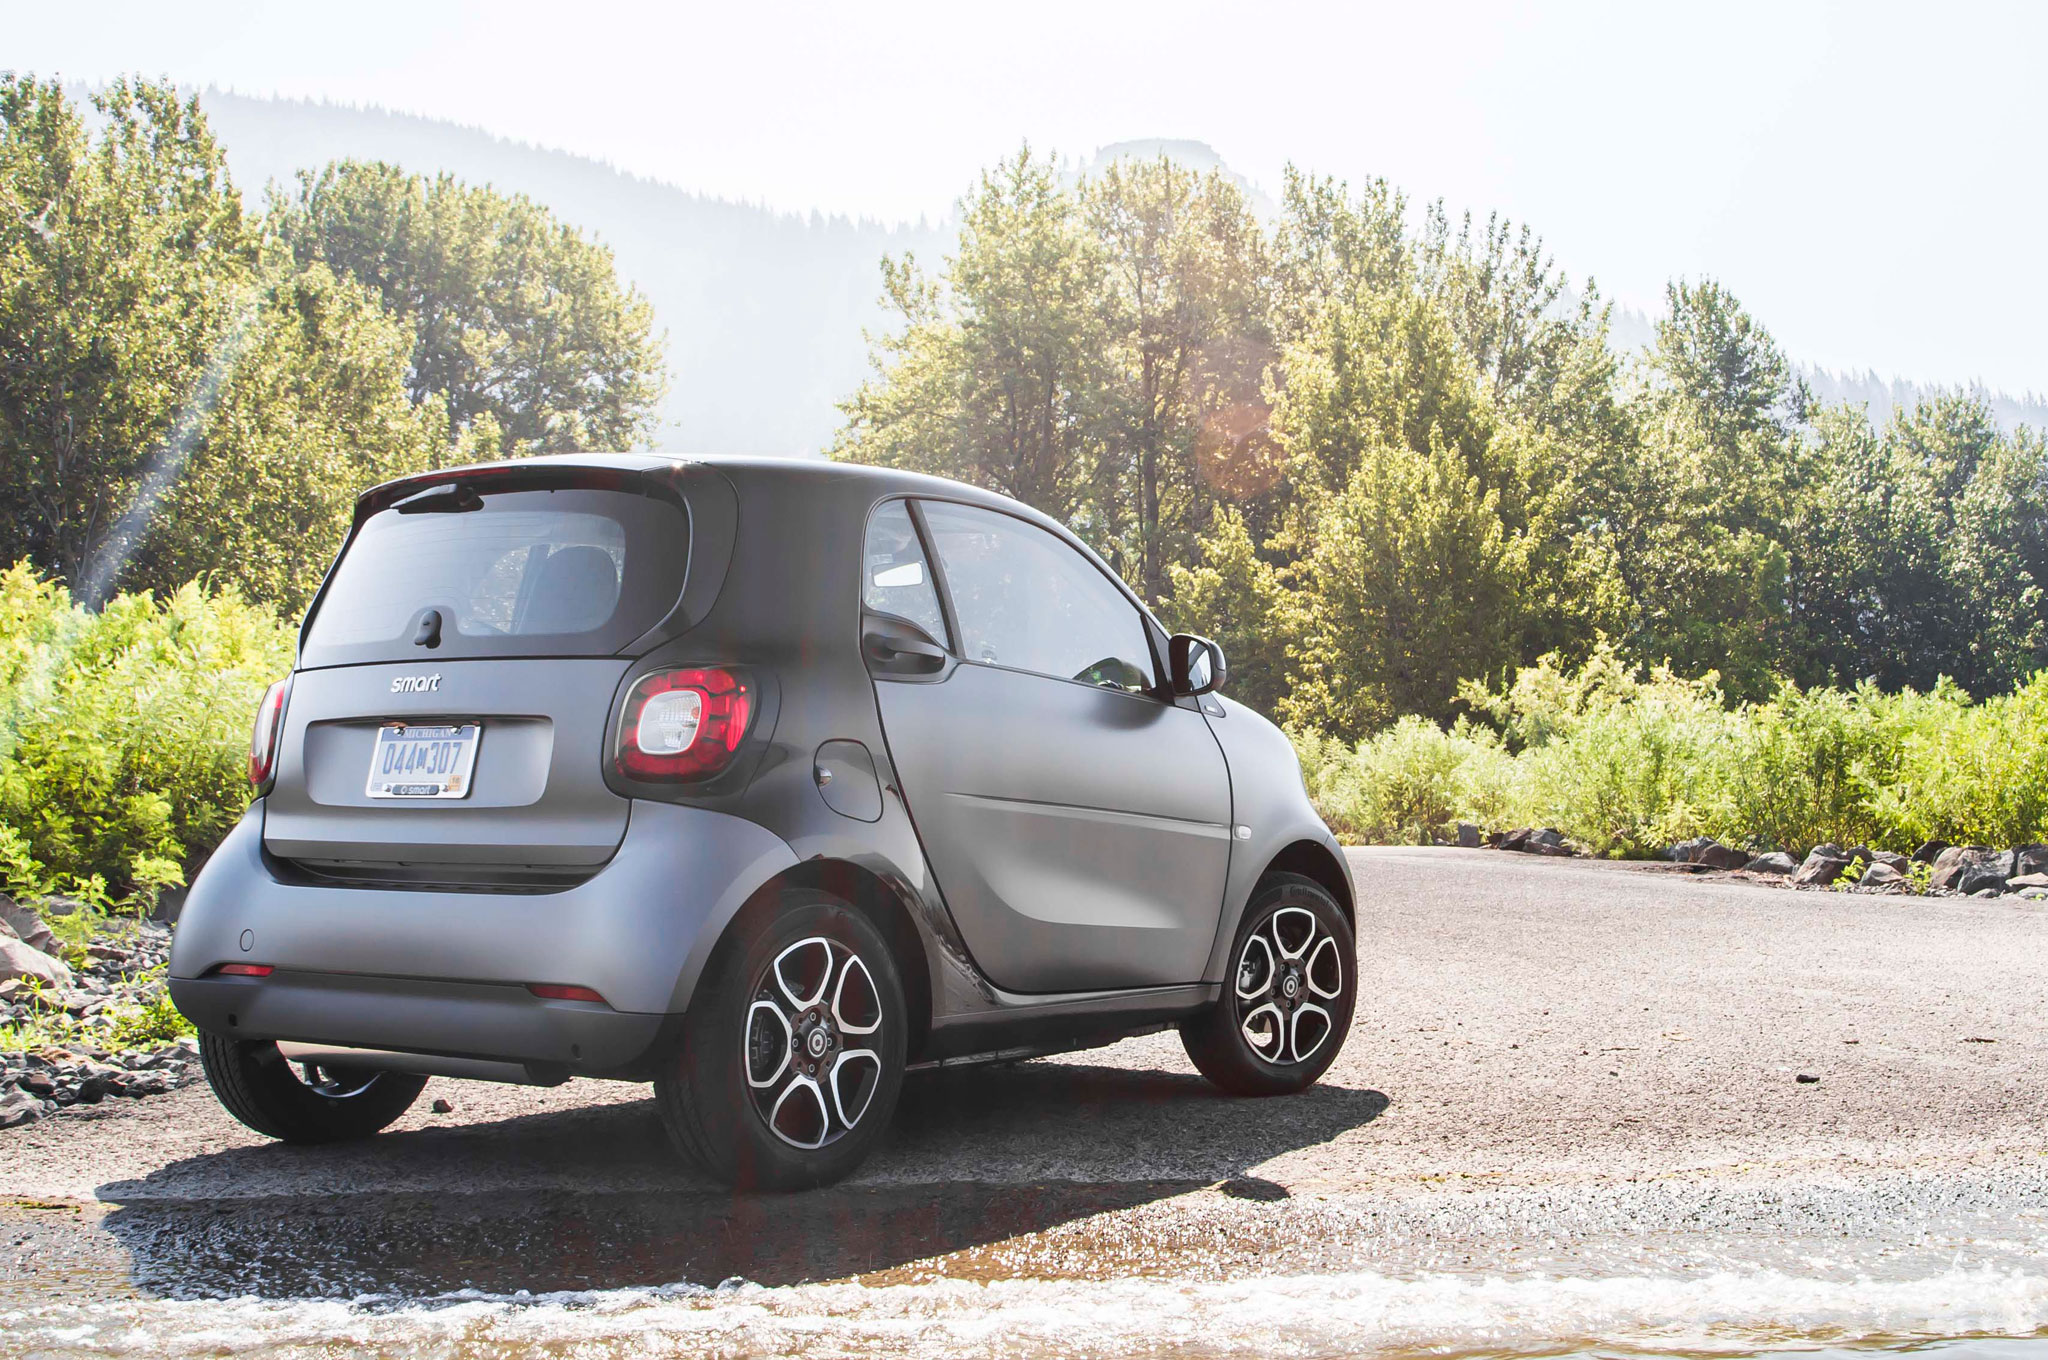 2016 Smart Fortwo Rear Exterior Preview (Photo 6 of 17)